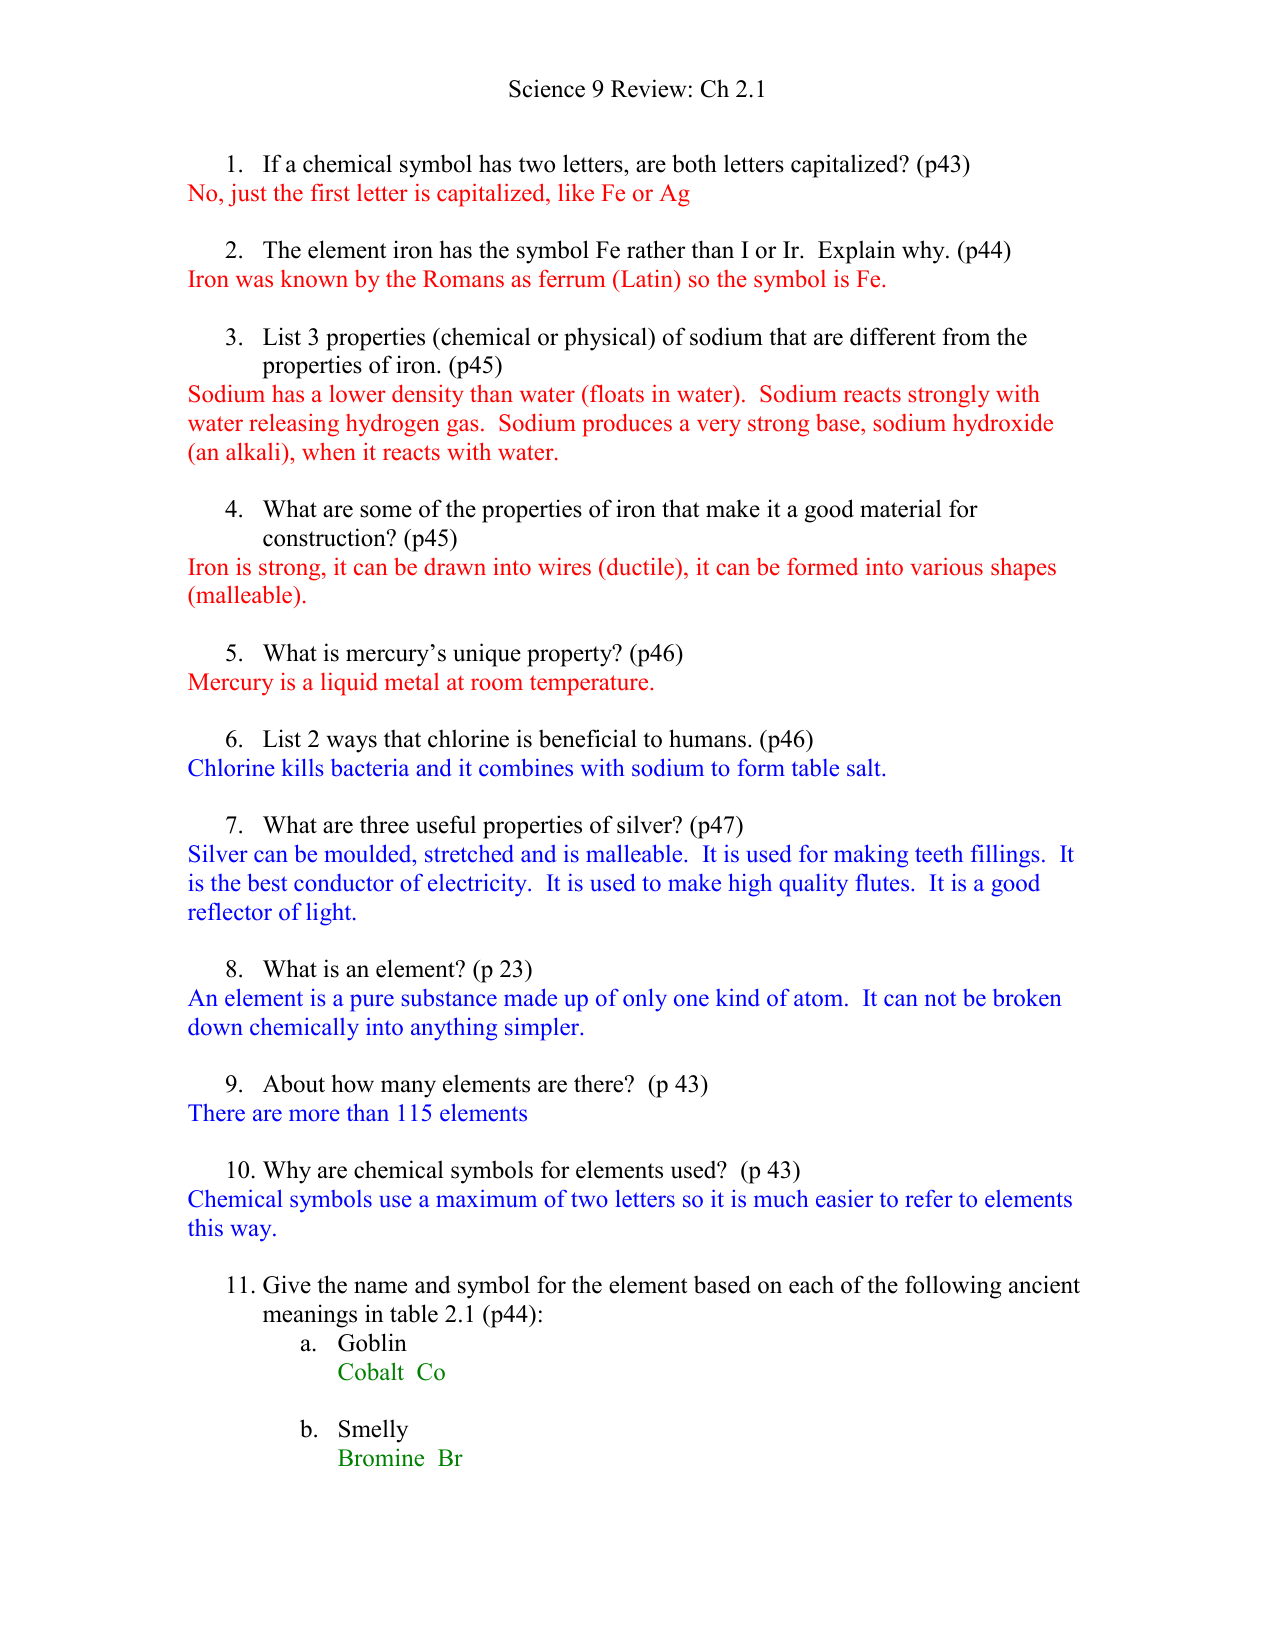 Sci 9 Review Worksheet 21 With Answers